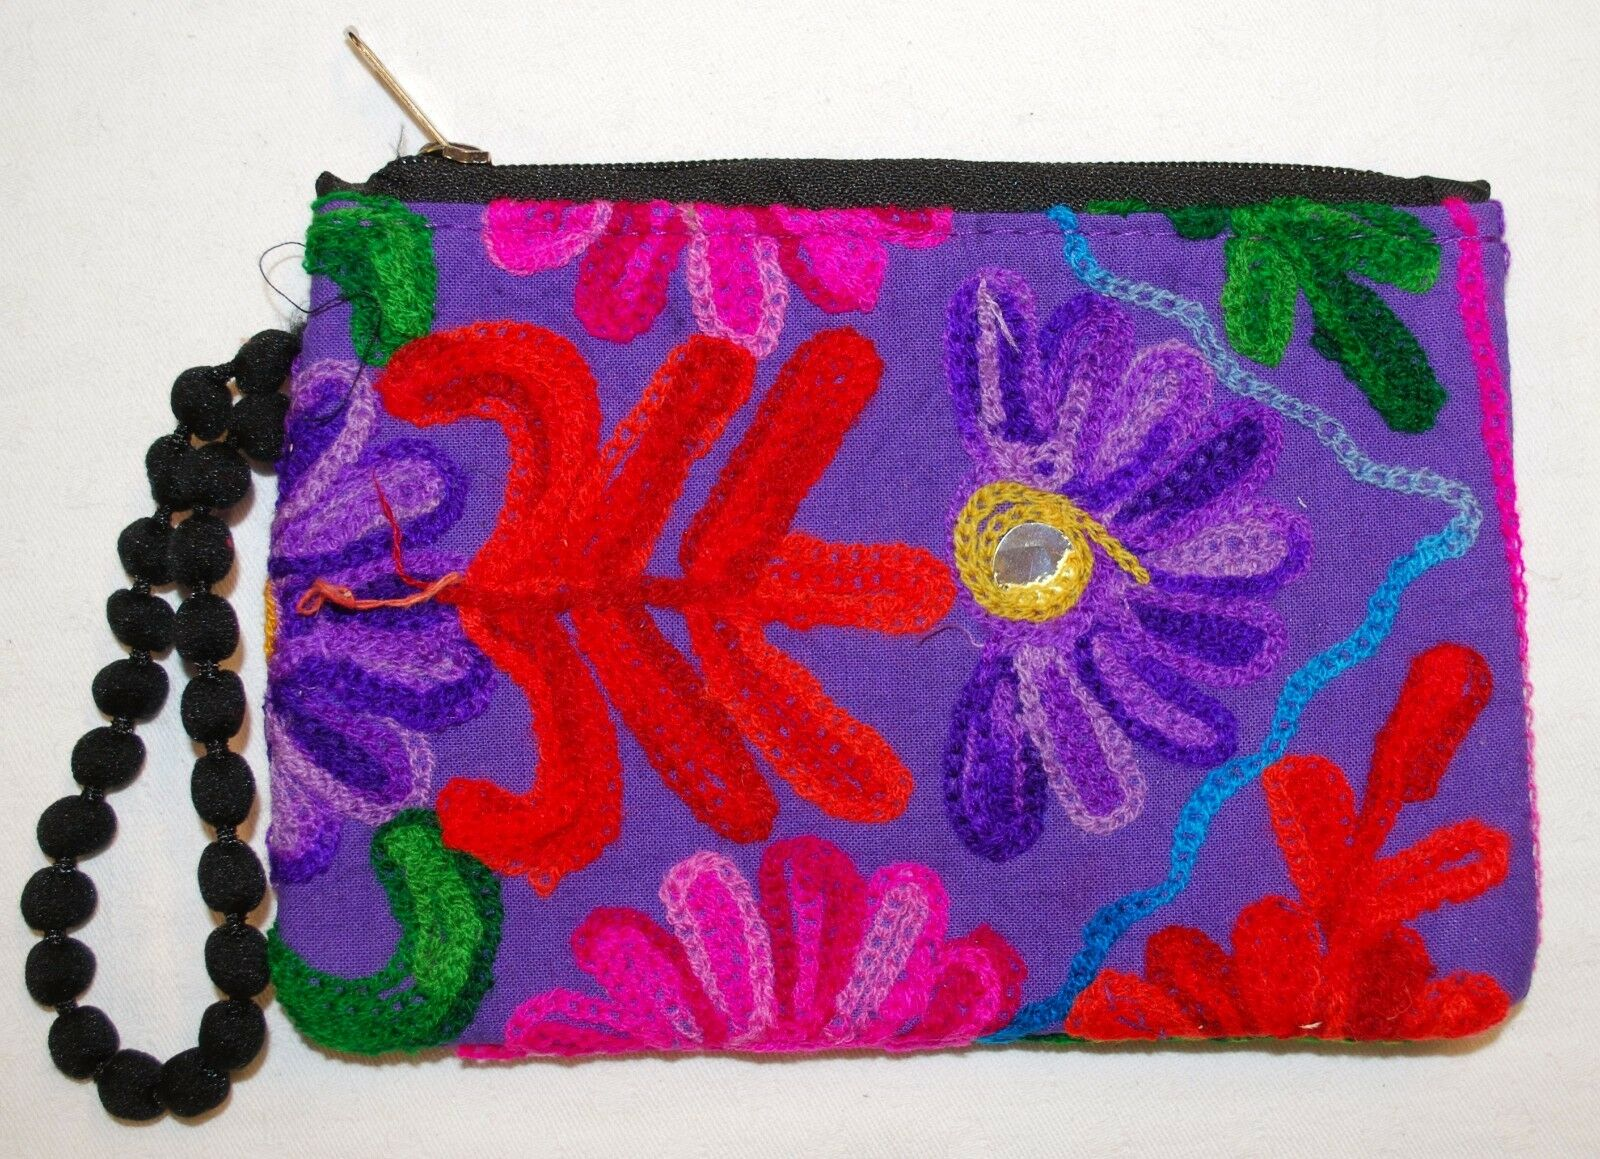 New Large Woven Cotton Purse Pouch Fair Trade Hippy Ethnic Nepal Ethical Flower